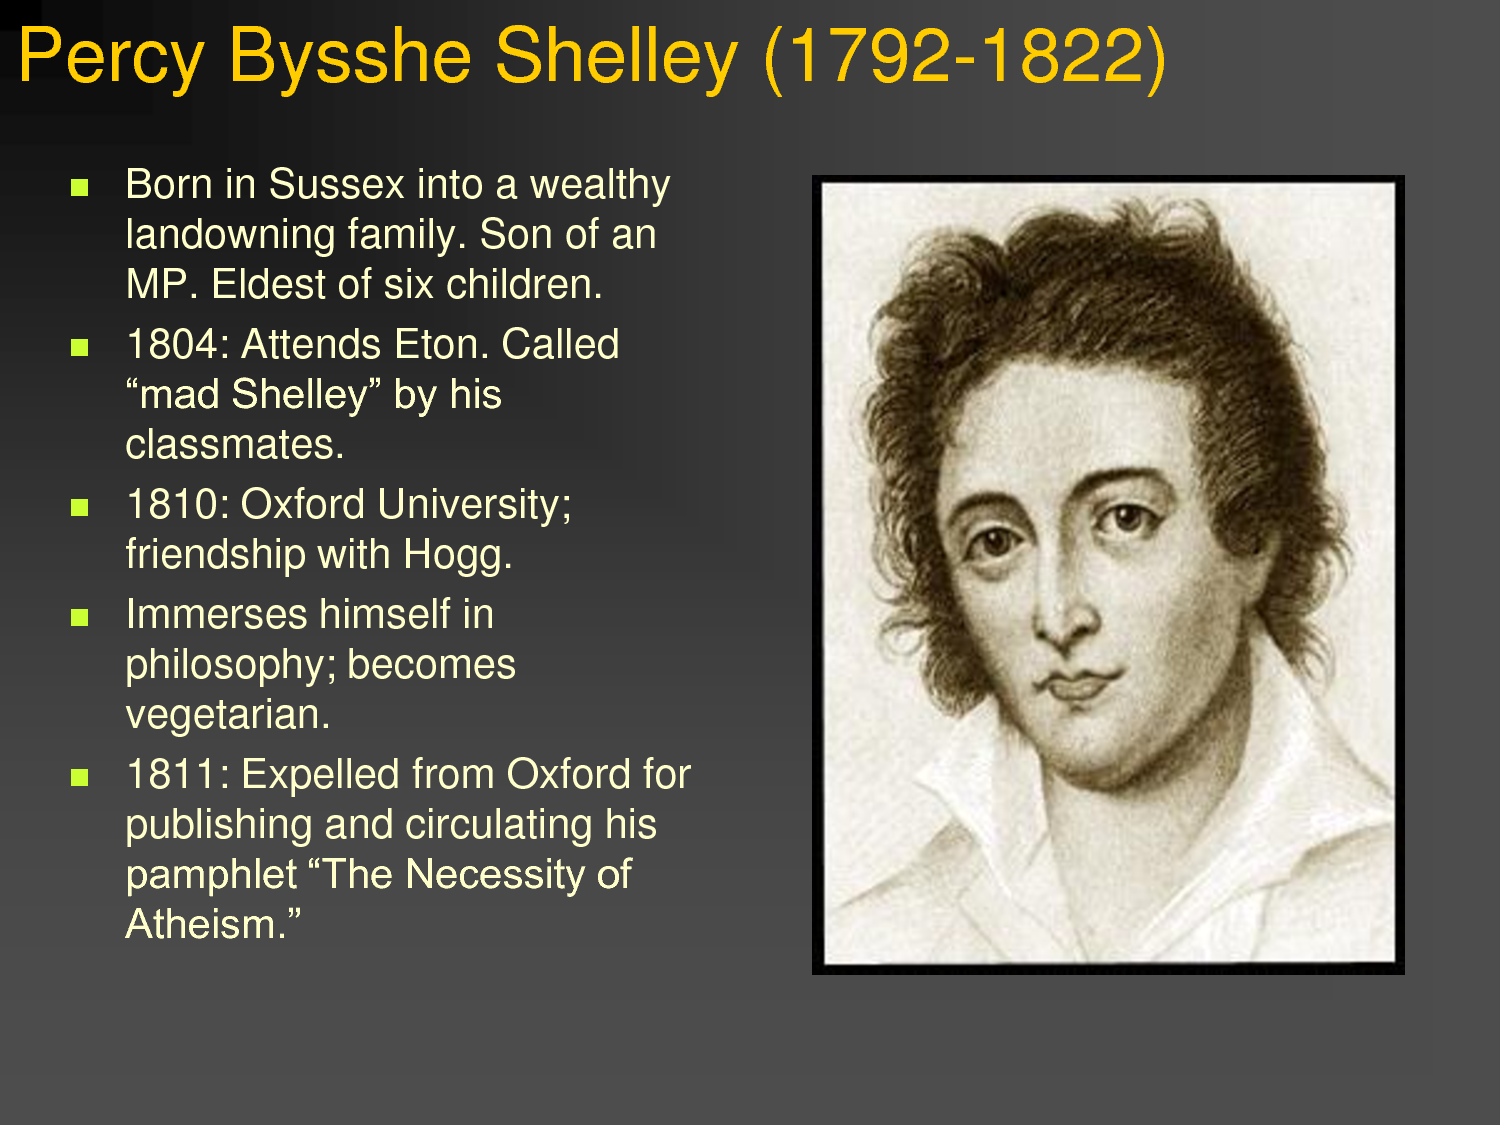 percy shelley Percy bysshe shelley: percy bysshe shelley, english romantic poet whose passionate search for personal love and social justice was gradually channeled from overt actions into poems that rank with the greatest in the english language shelley was the heir to rich estates acquired by his grandfather, bysshe (pronounced.